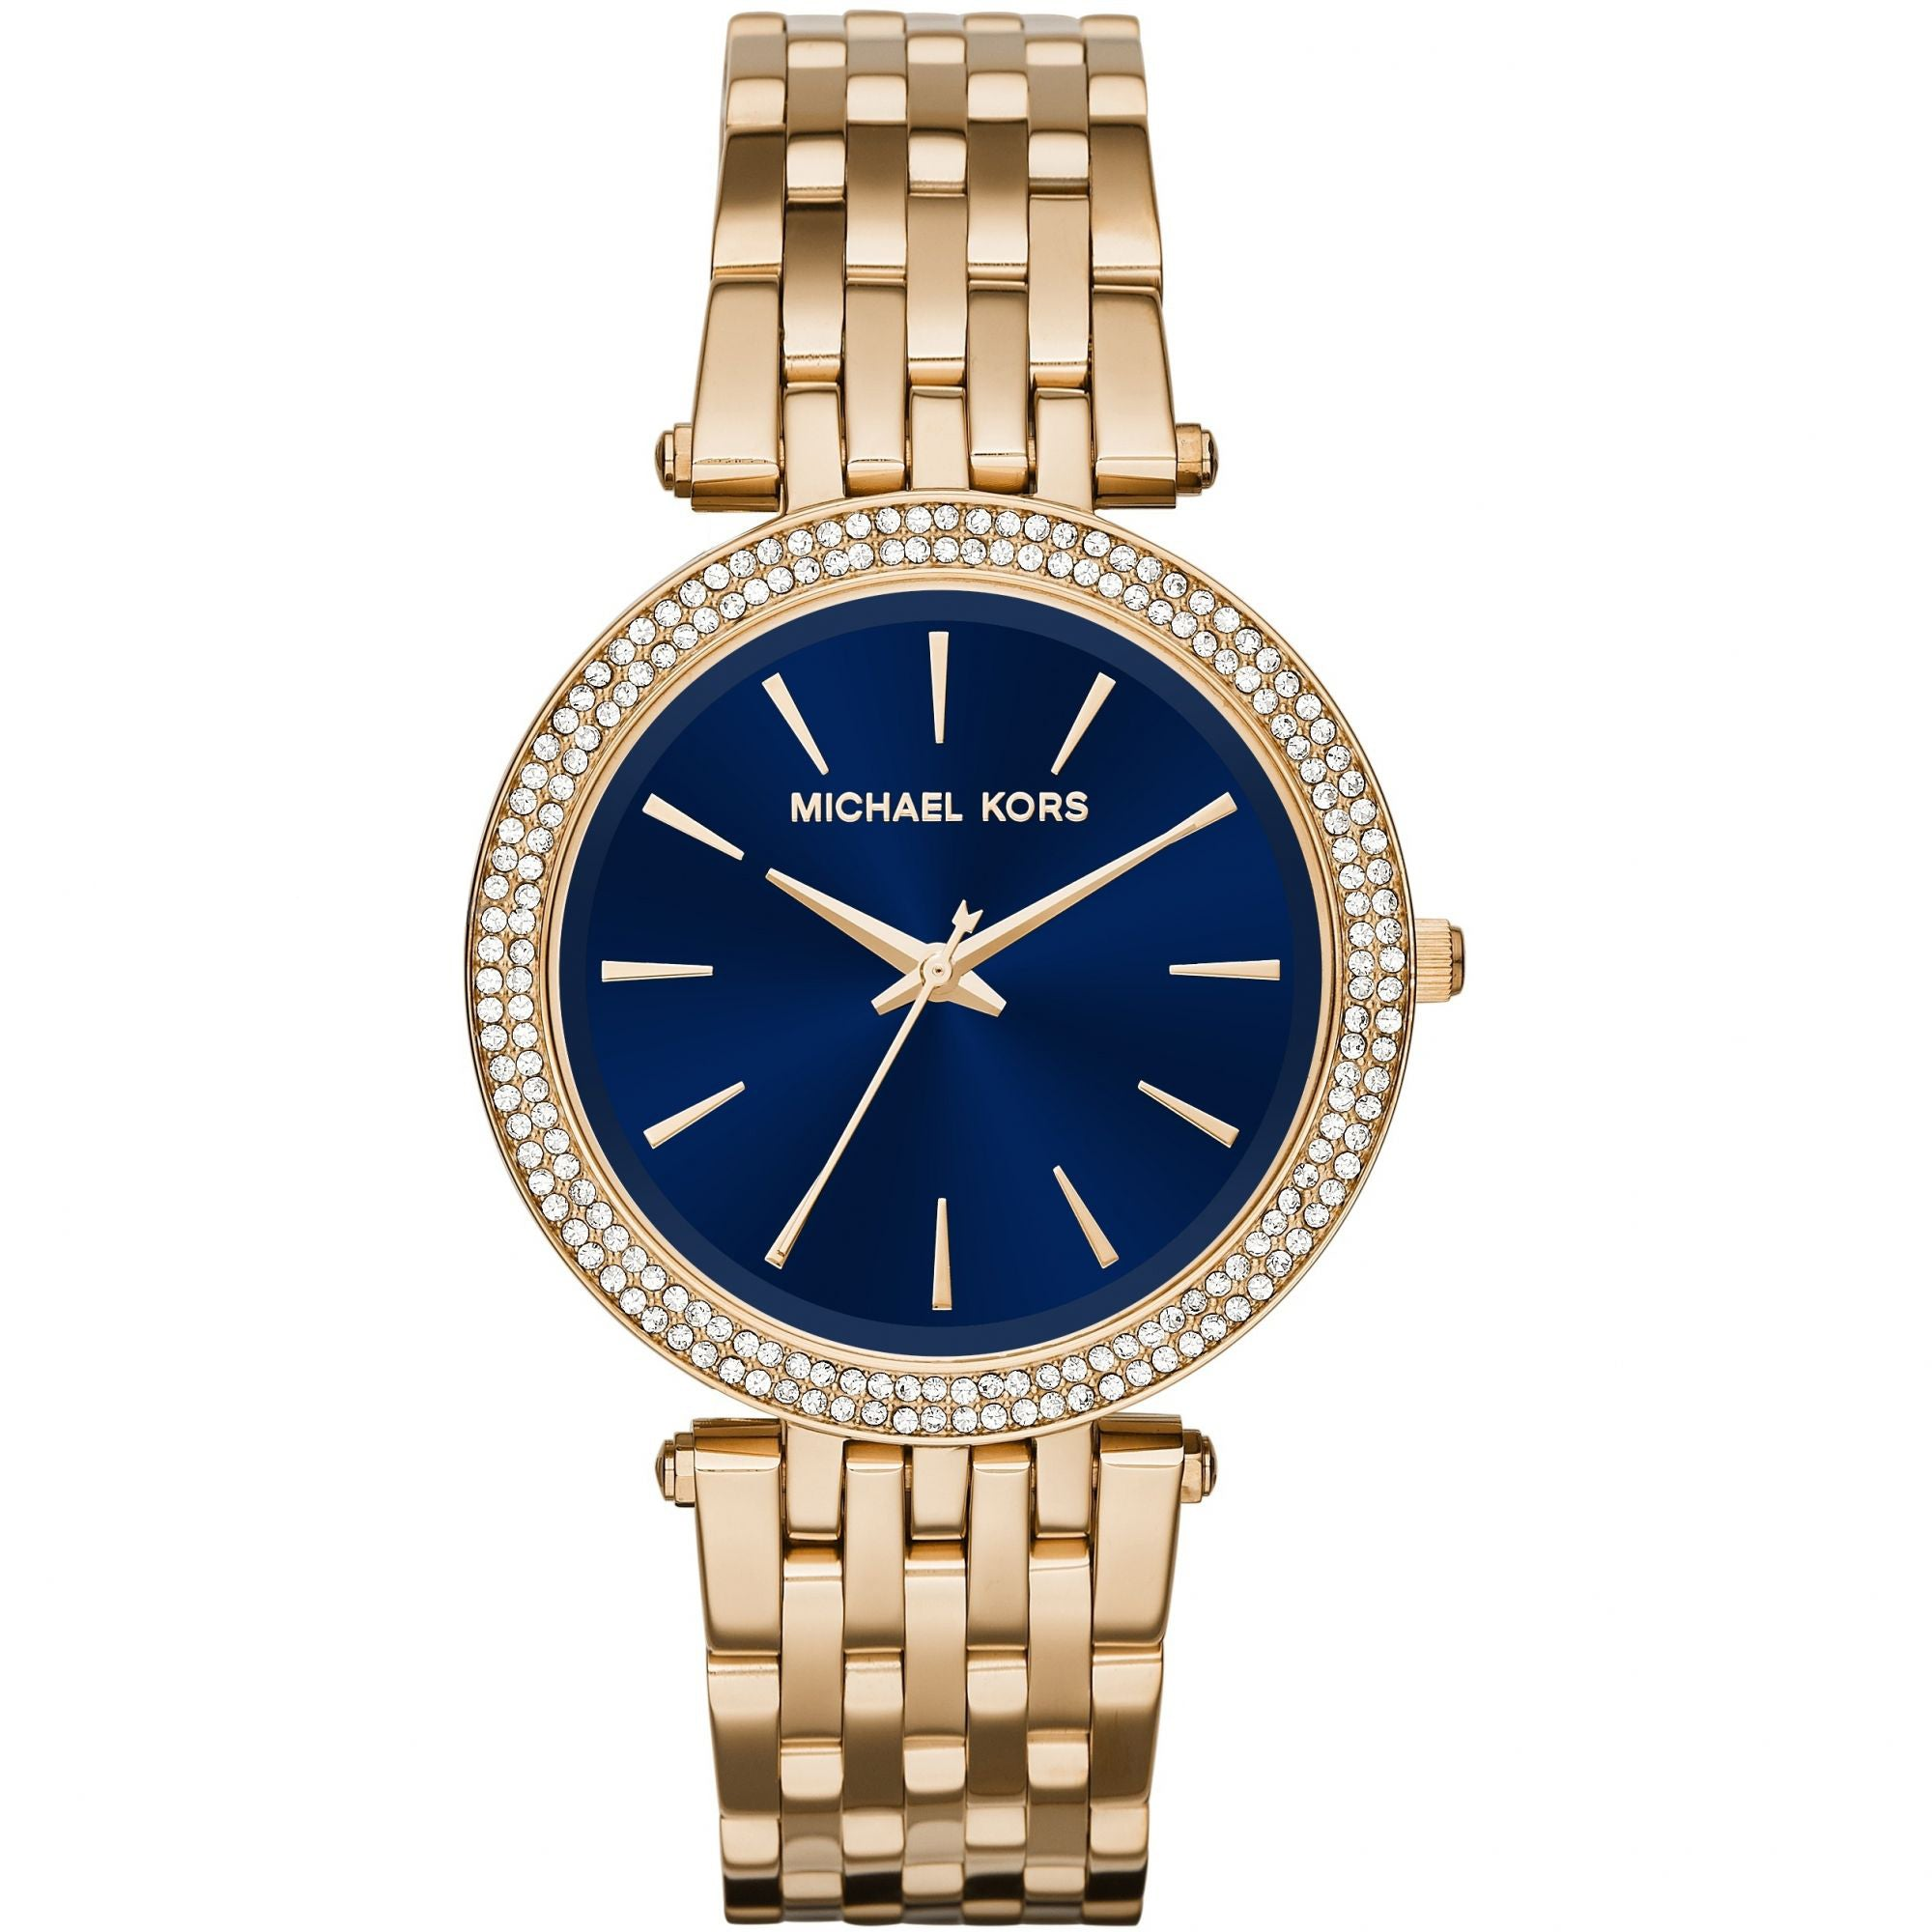 Michael Kors Watch MK3406